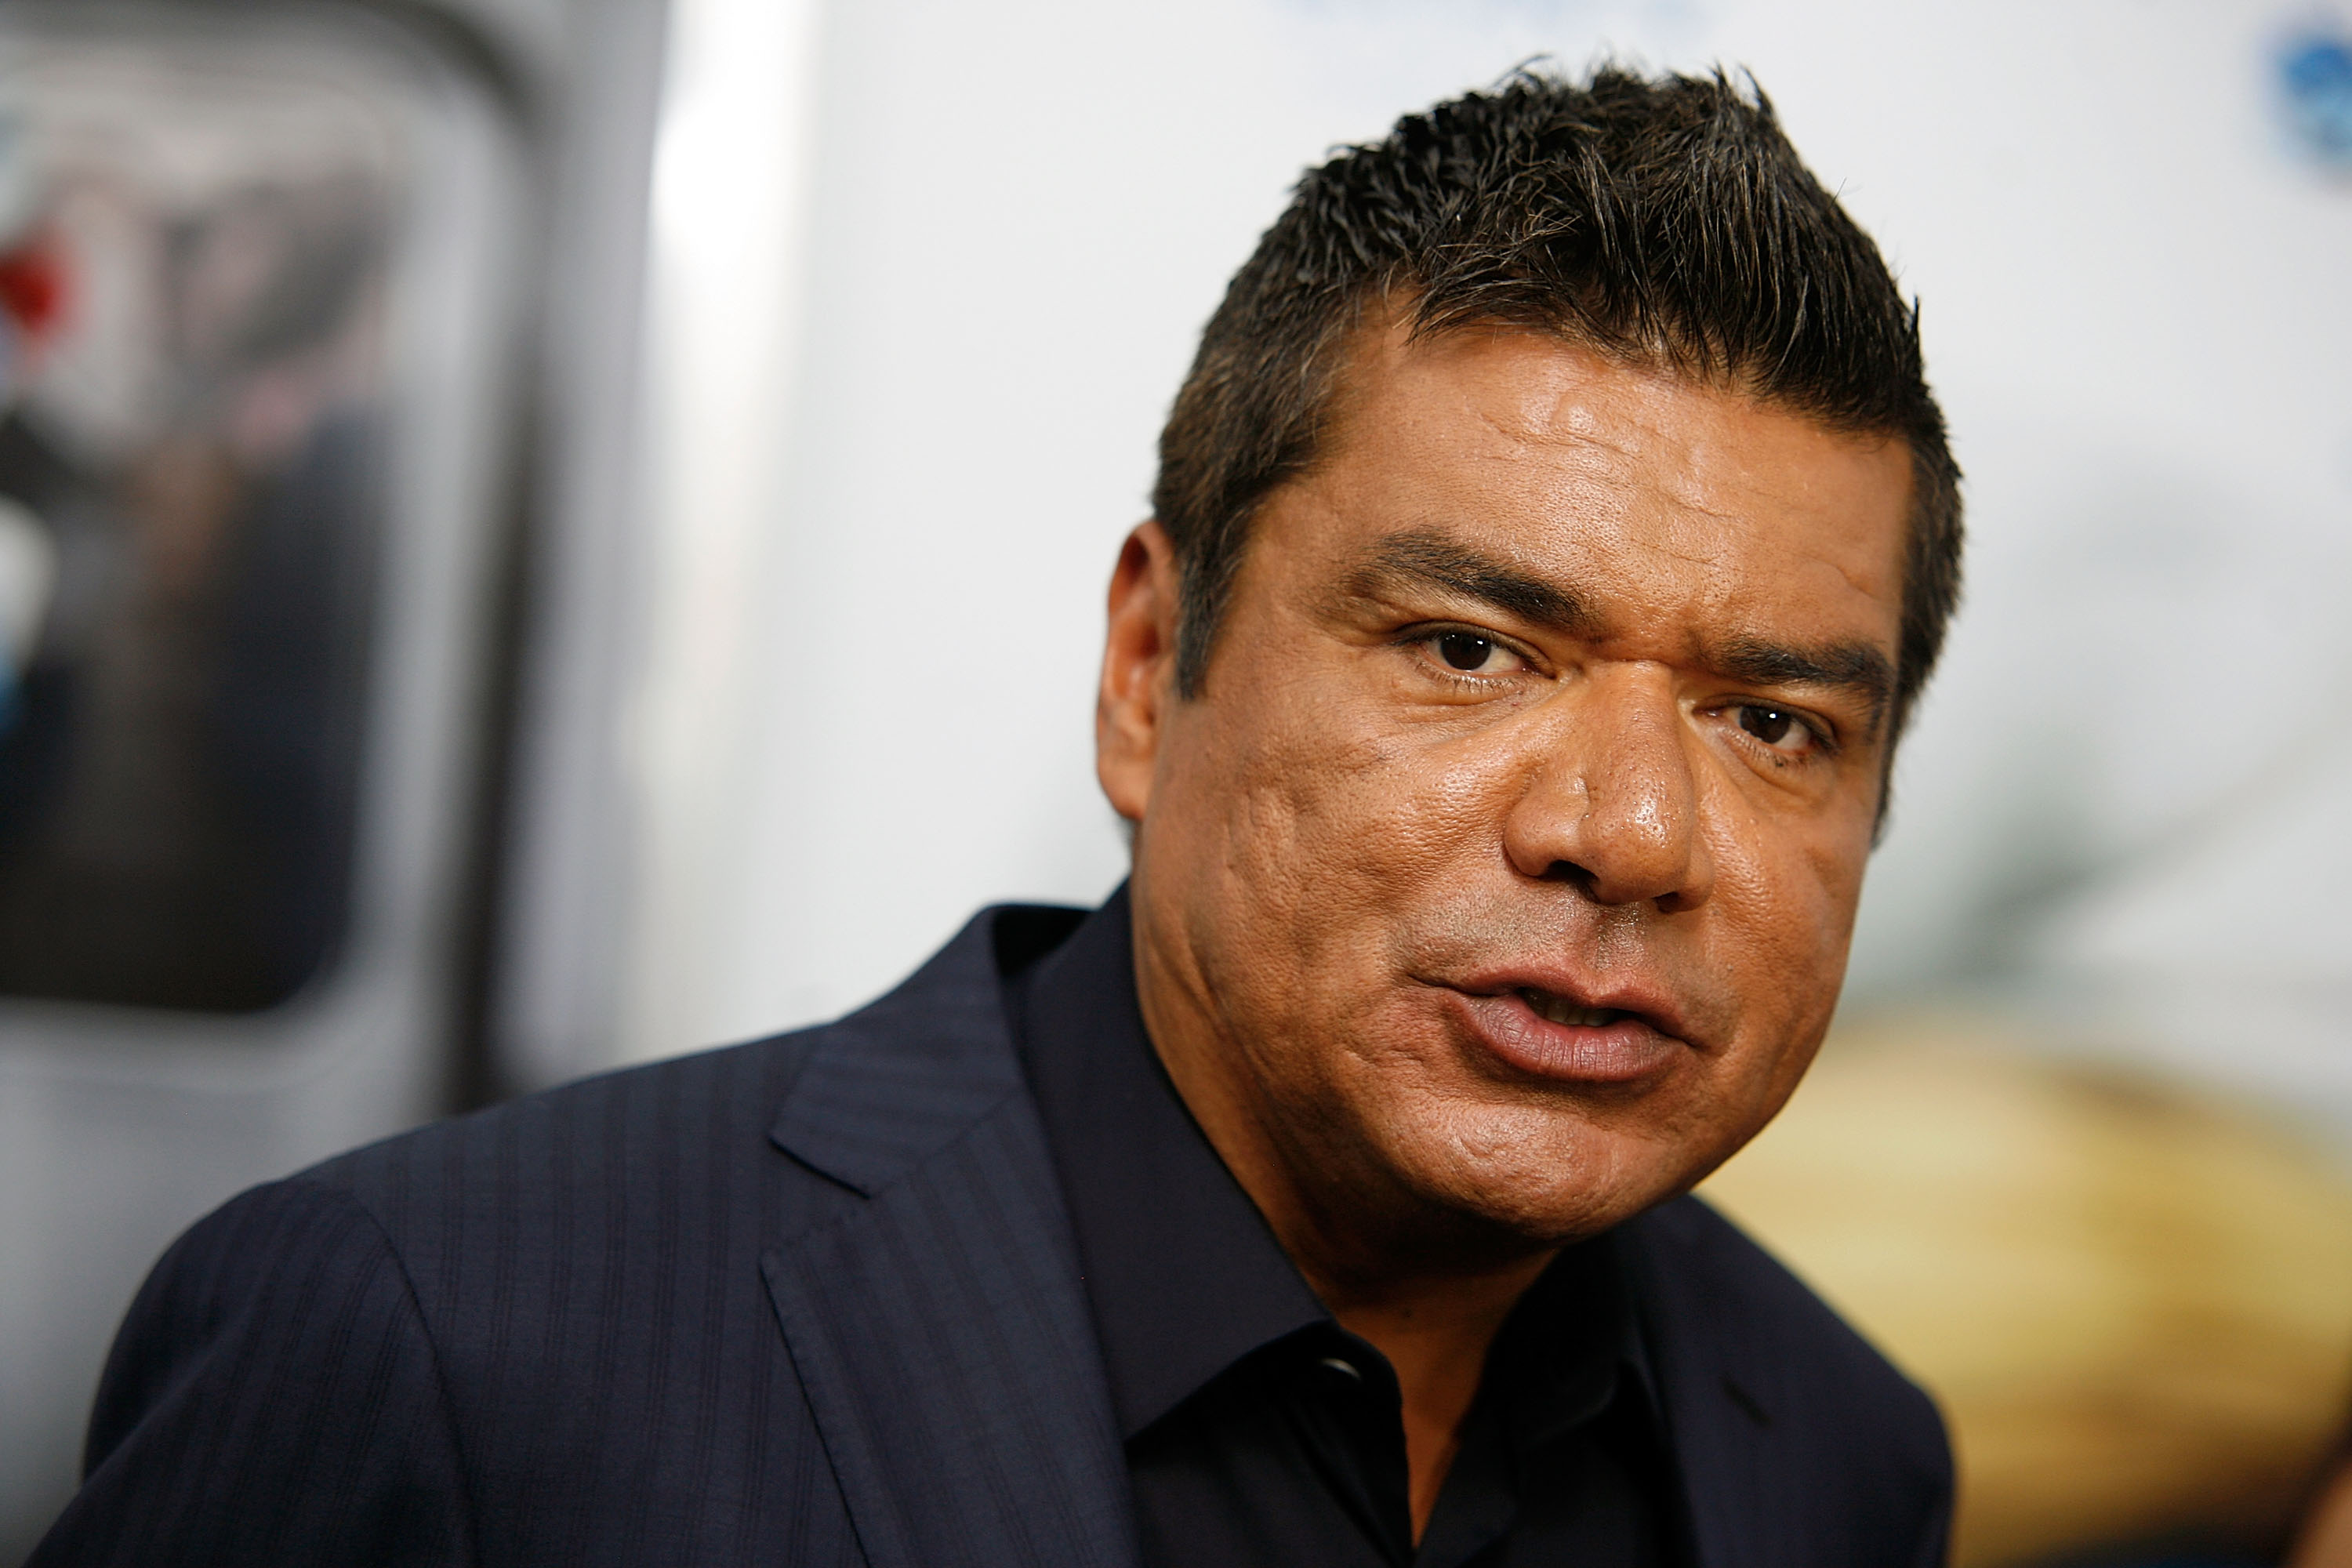 George Lopez got in a fight with an alleged Trump supporter at a Hooters